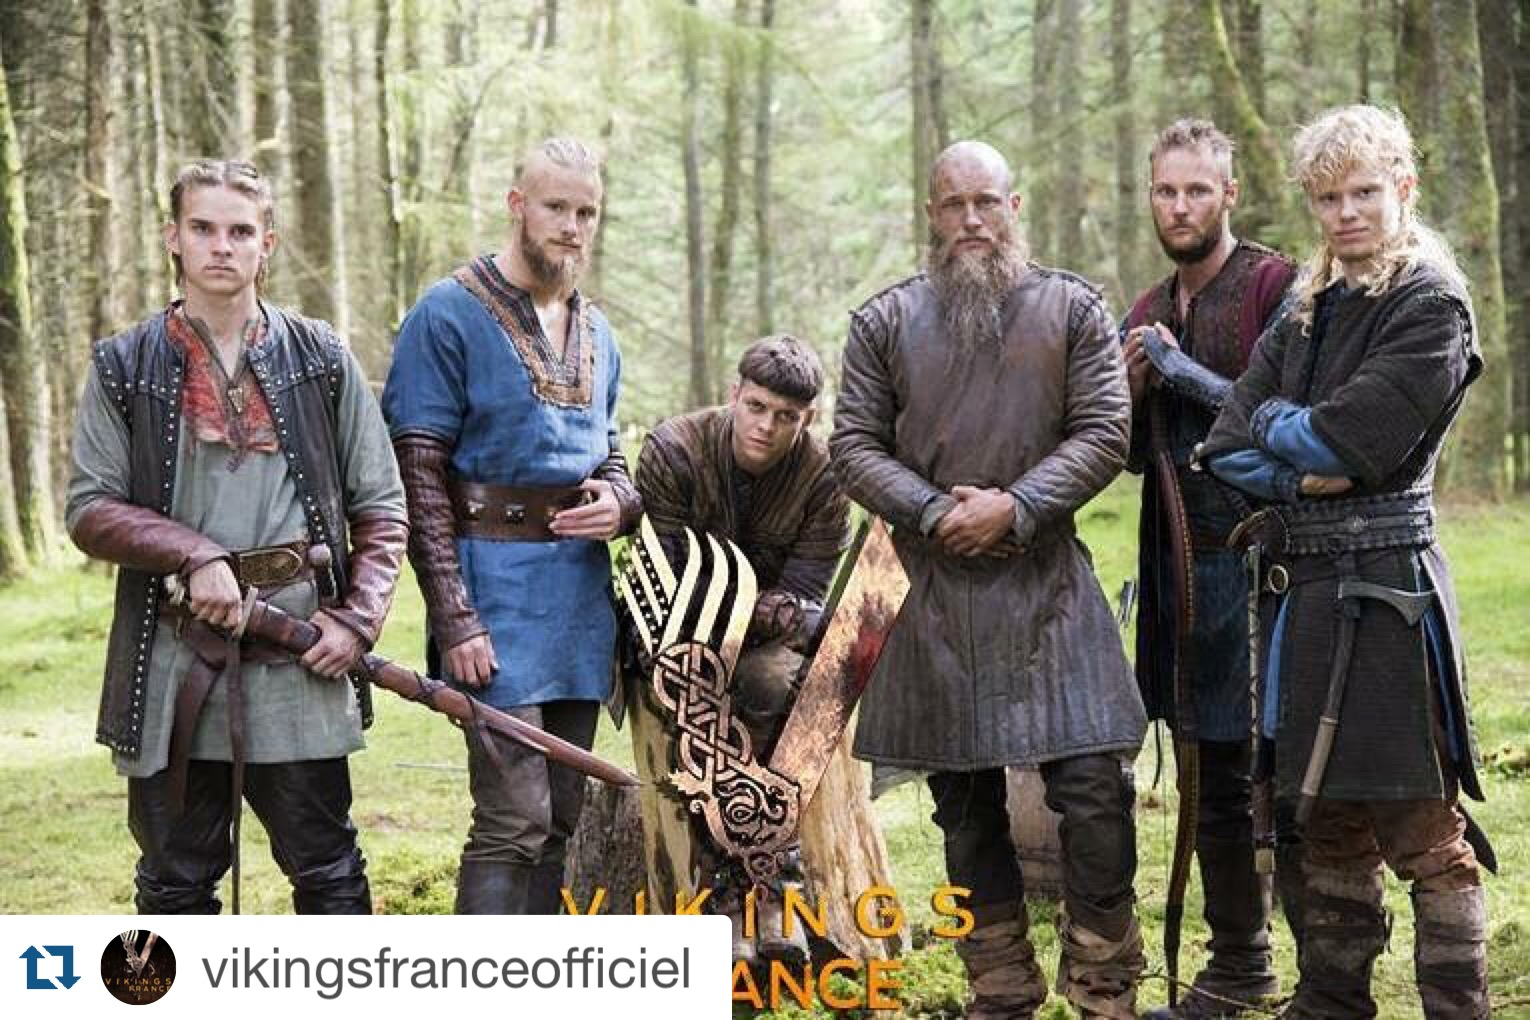 VIKINGS: New cast announced: The grown-up versions of